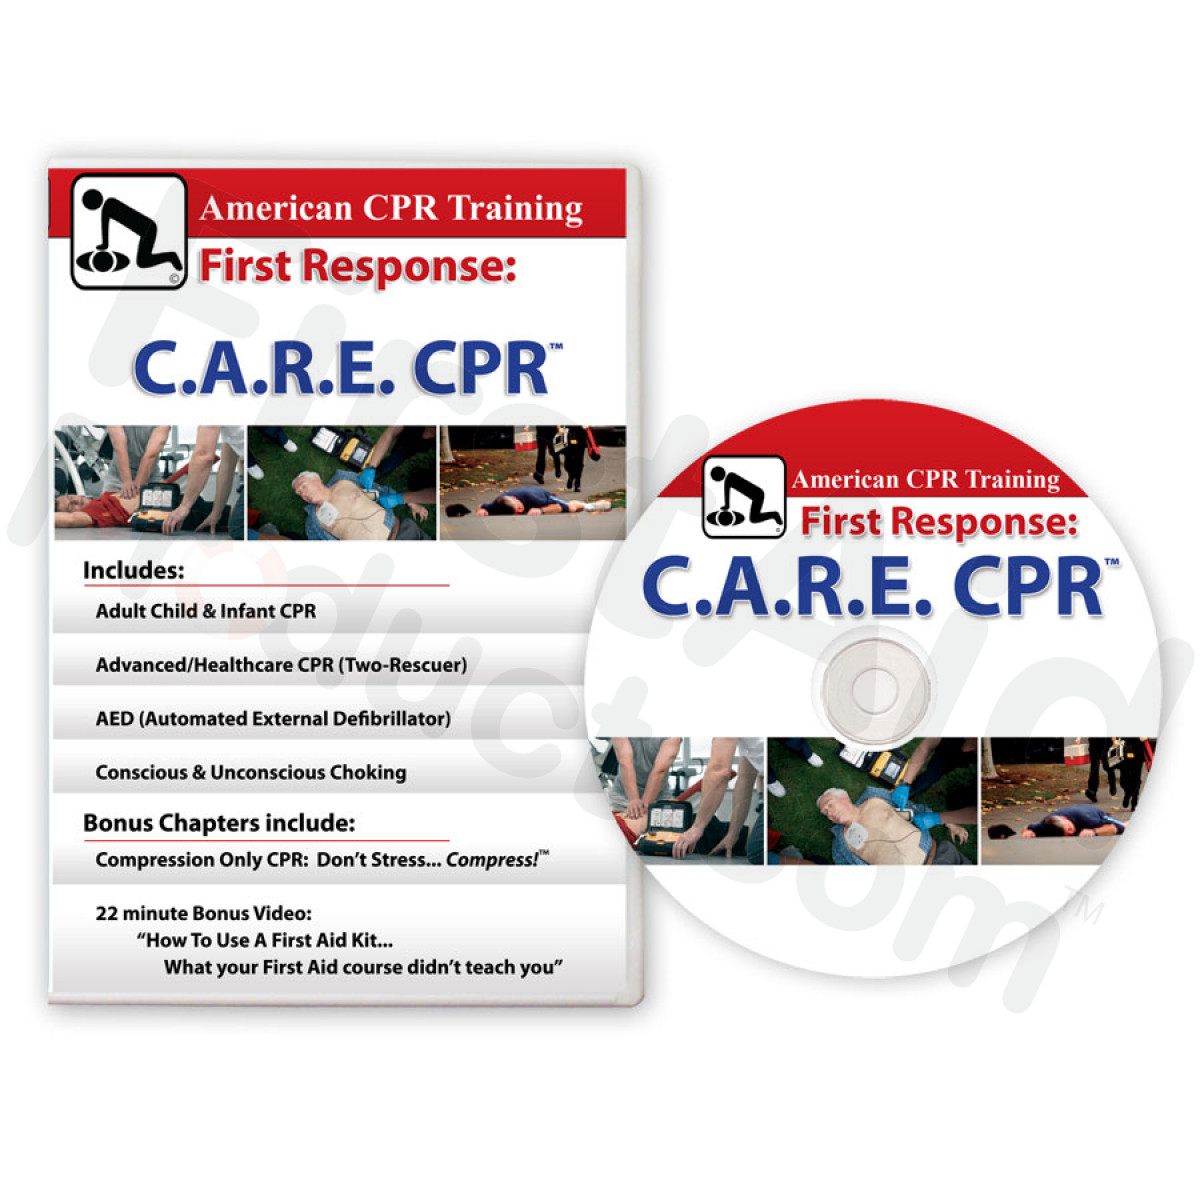 First-Aid-Product.com: BOGO: The First Aid Video + C.A.R.E. CPR DVDs